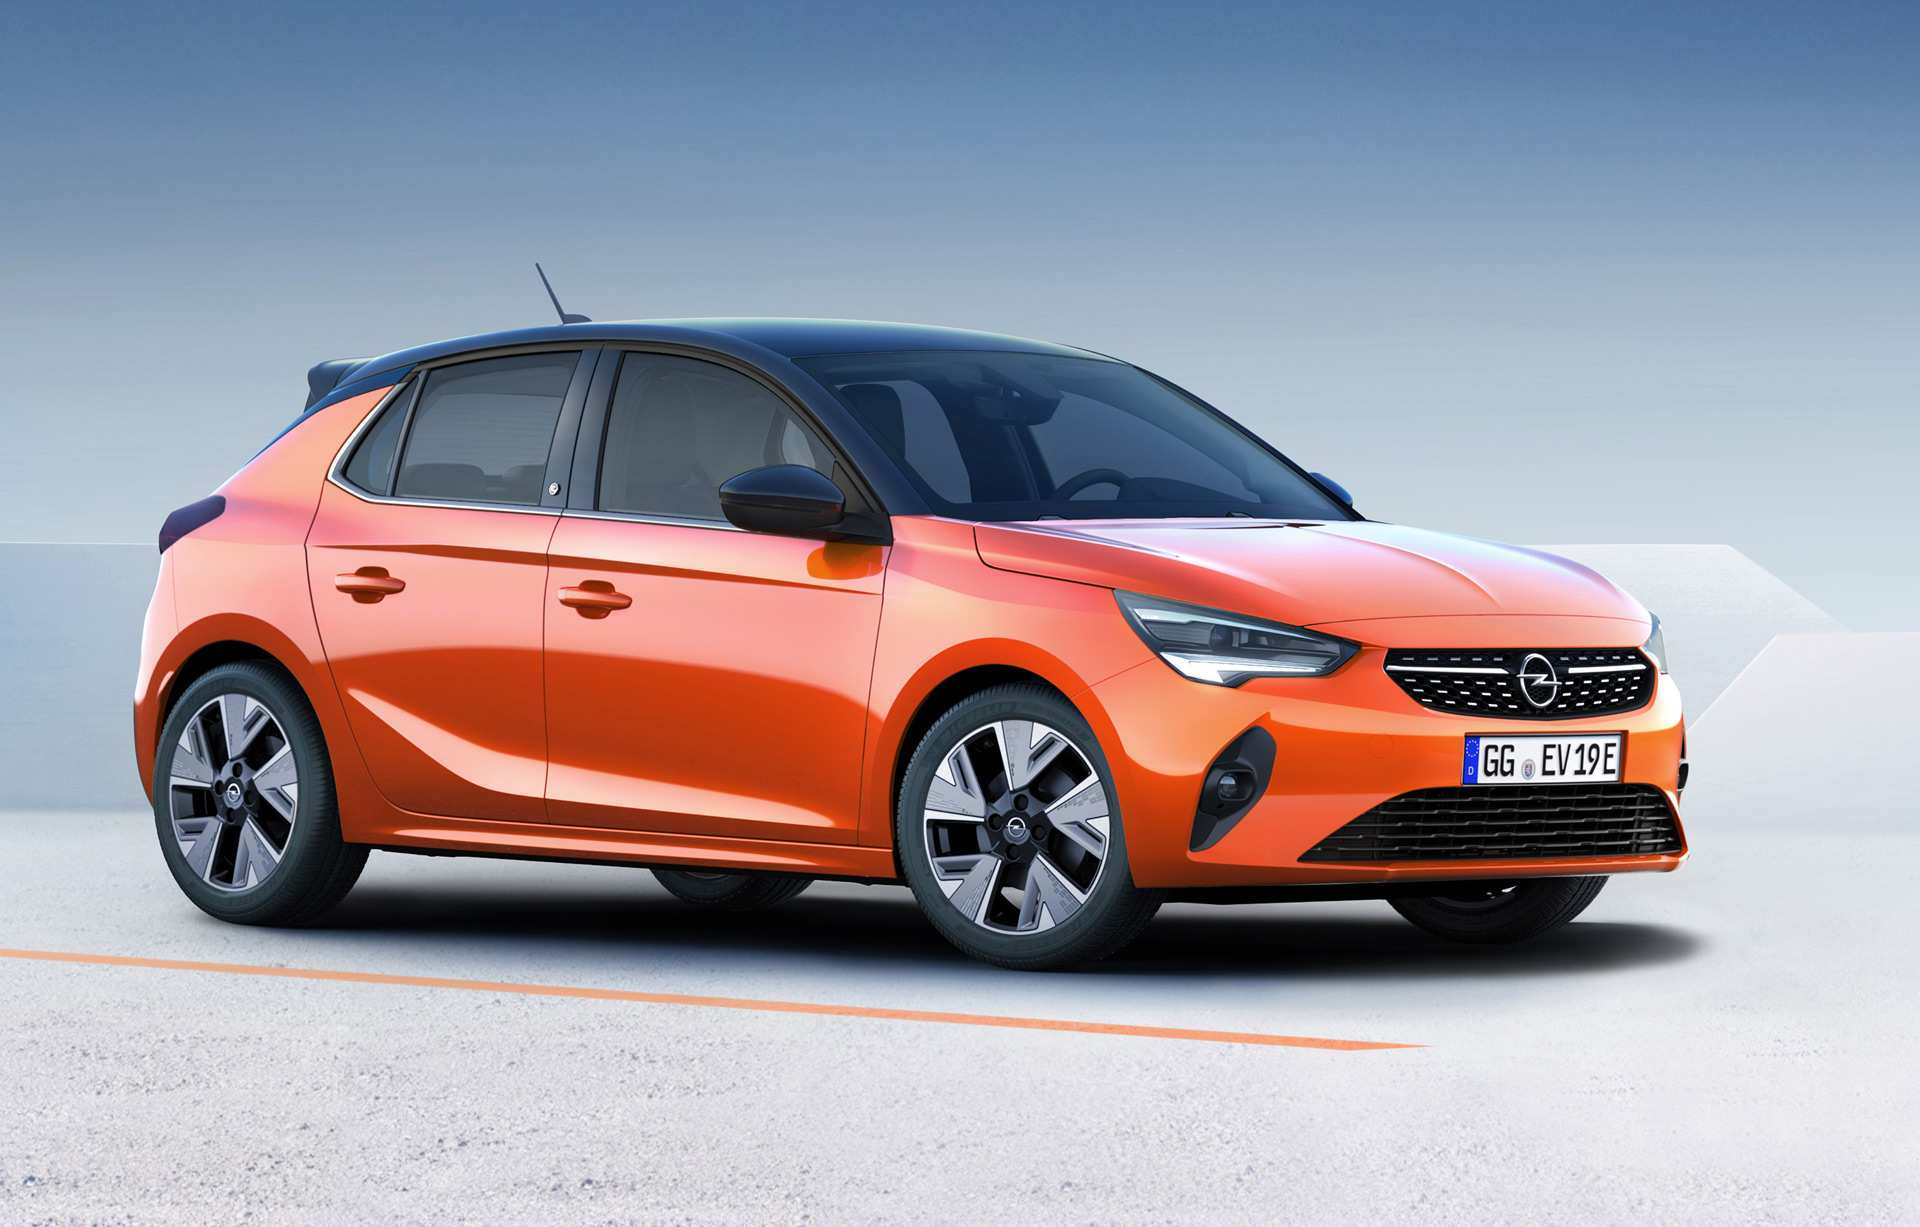 38 Great Opel Ecorsa 2020 Release Date with Opel Ecorsa 2020